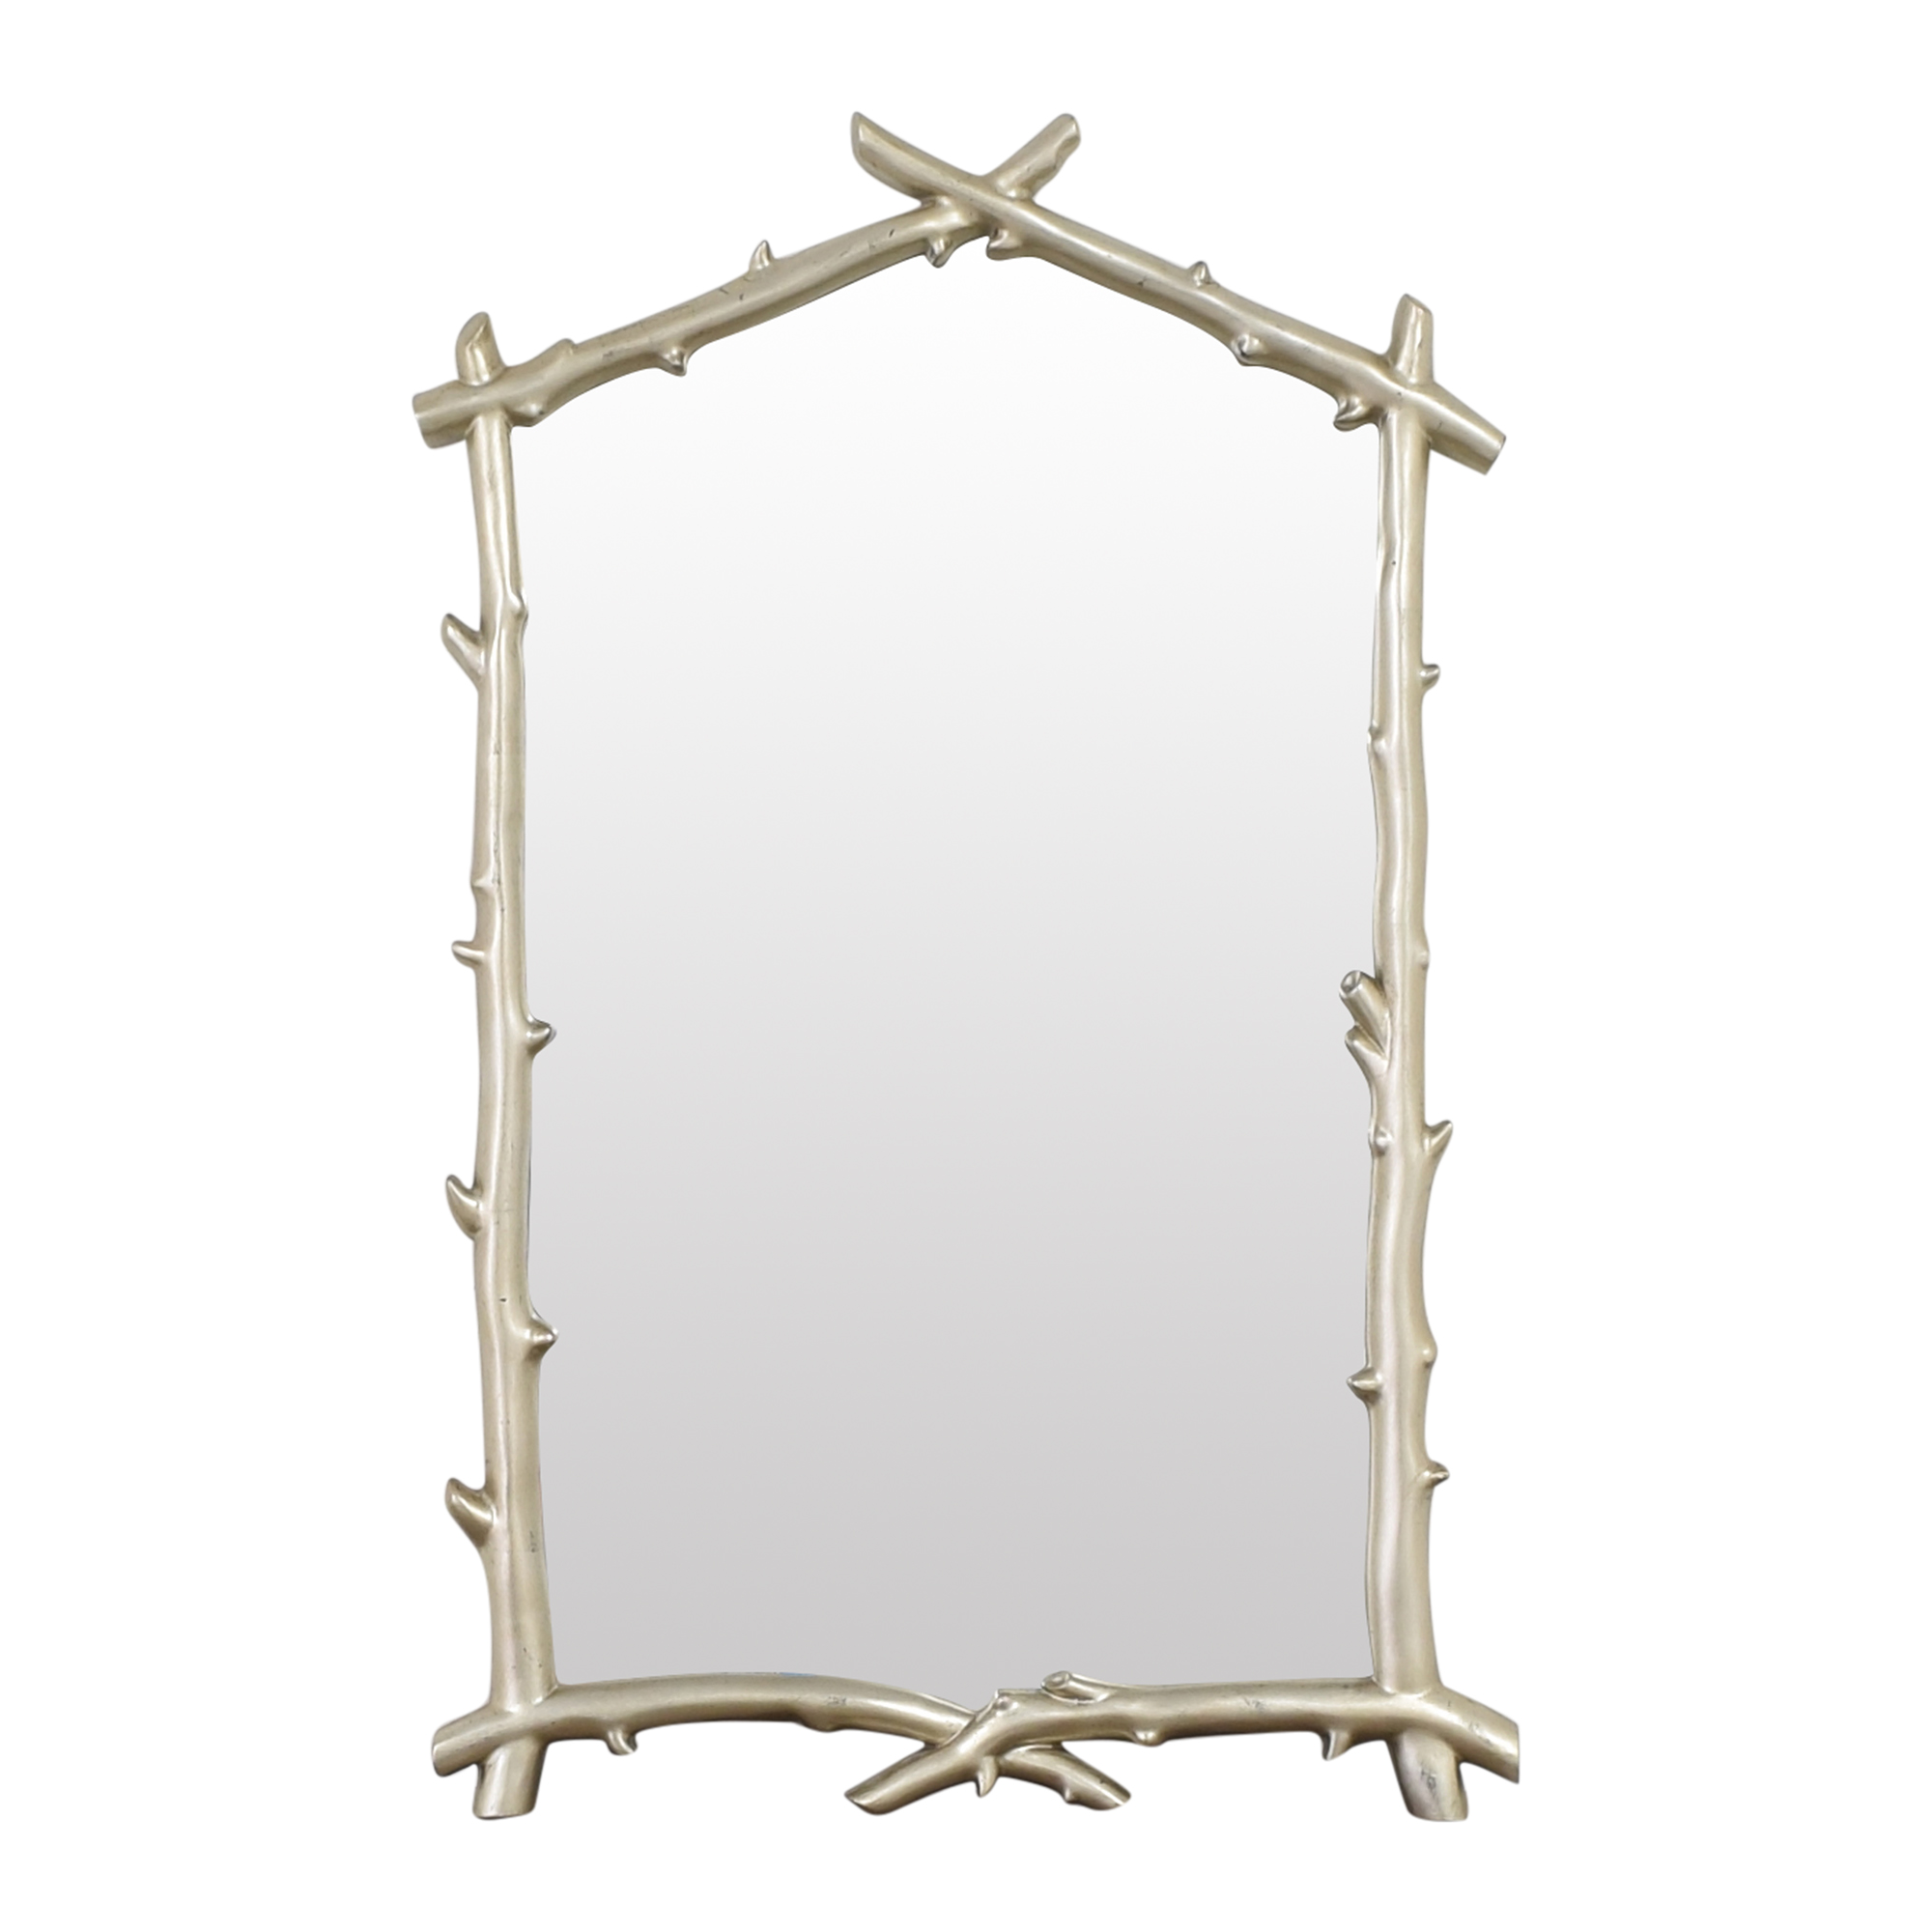 Decorative Branch Style Mirror ma